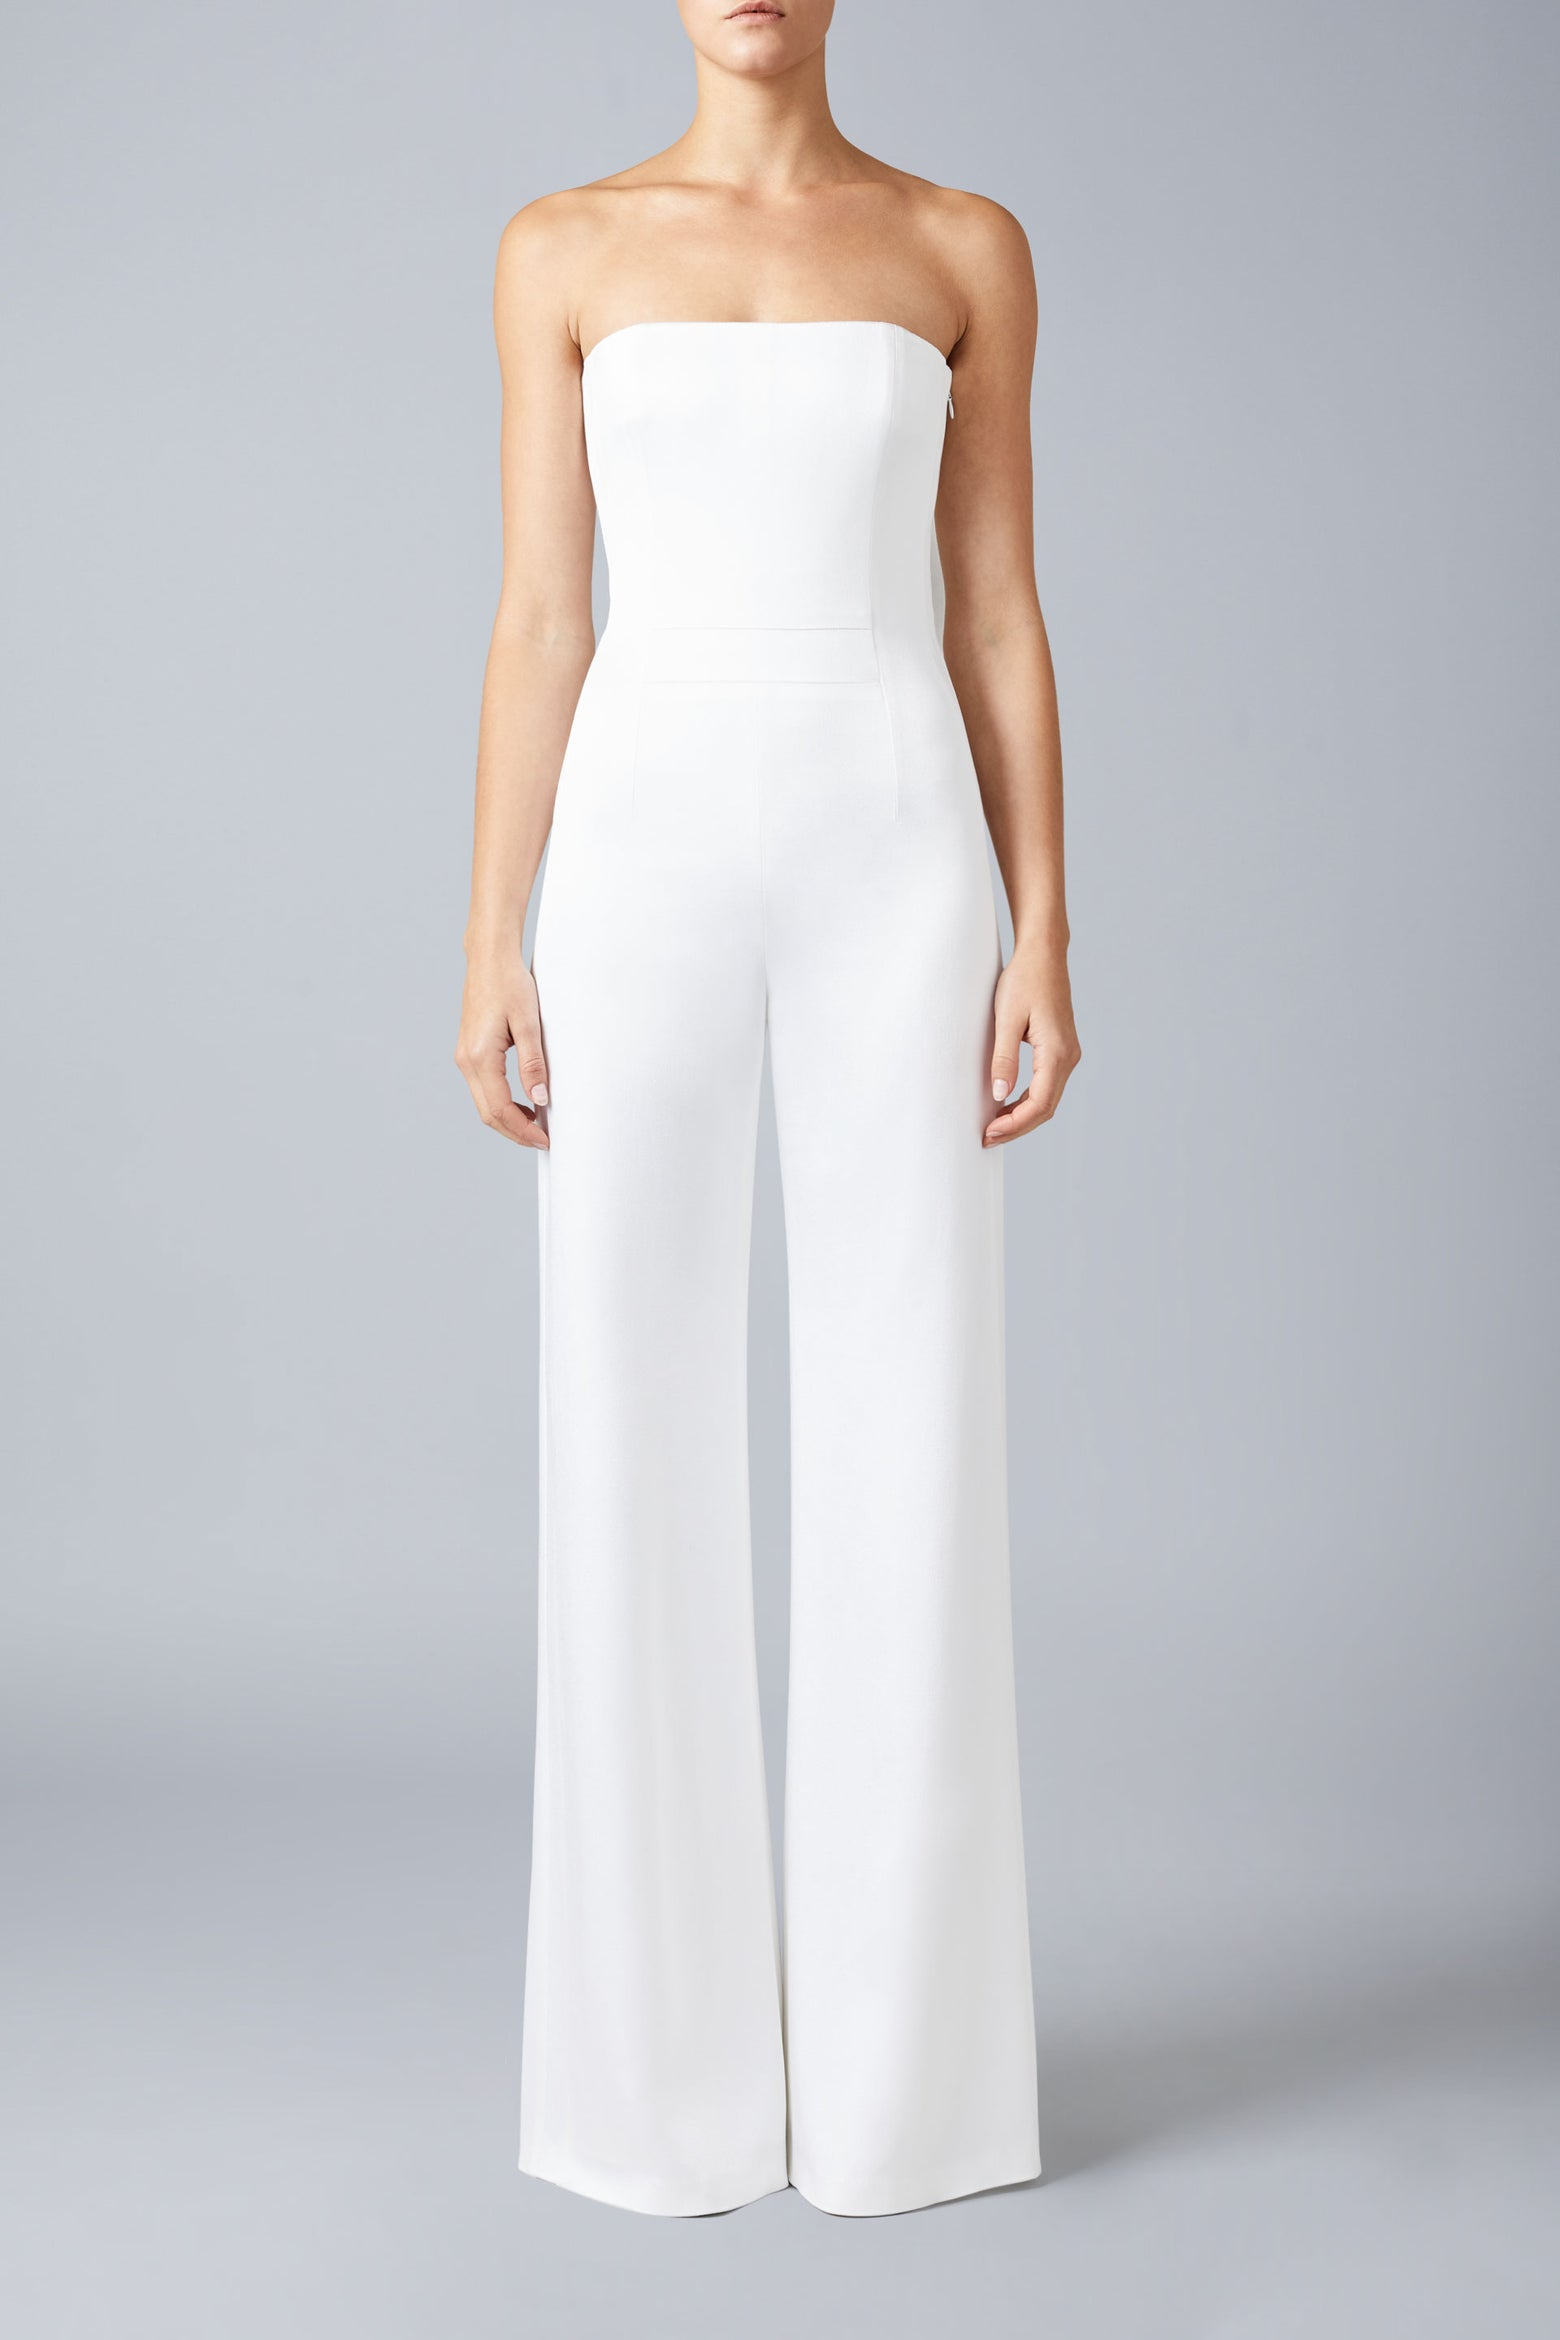 Paris Strapless Bridal Jumpsuit